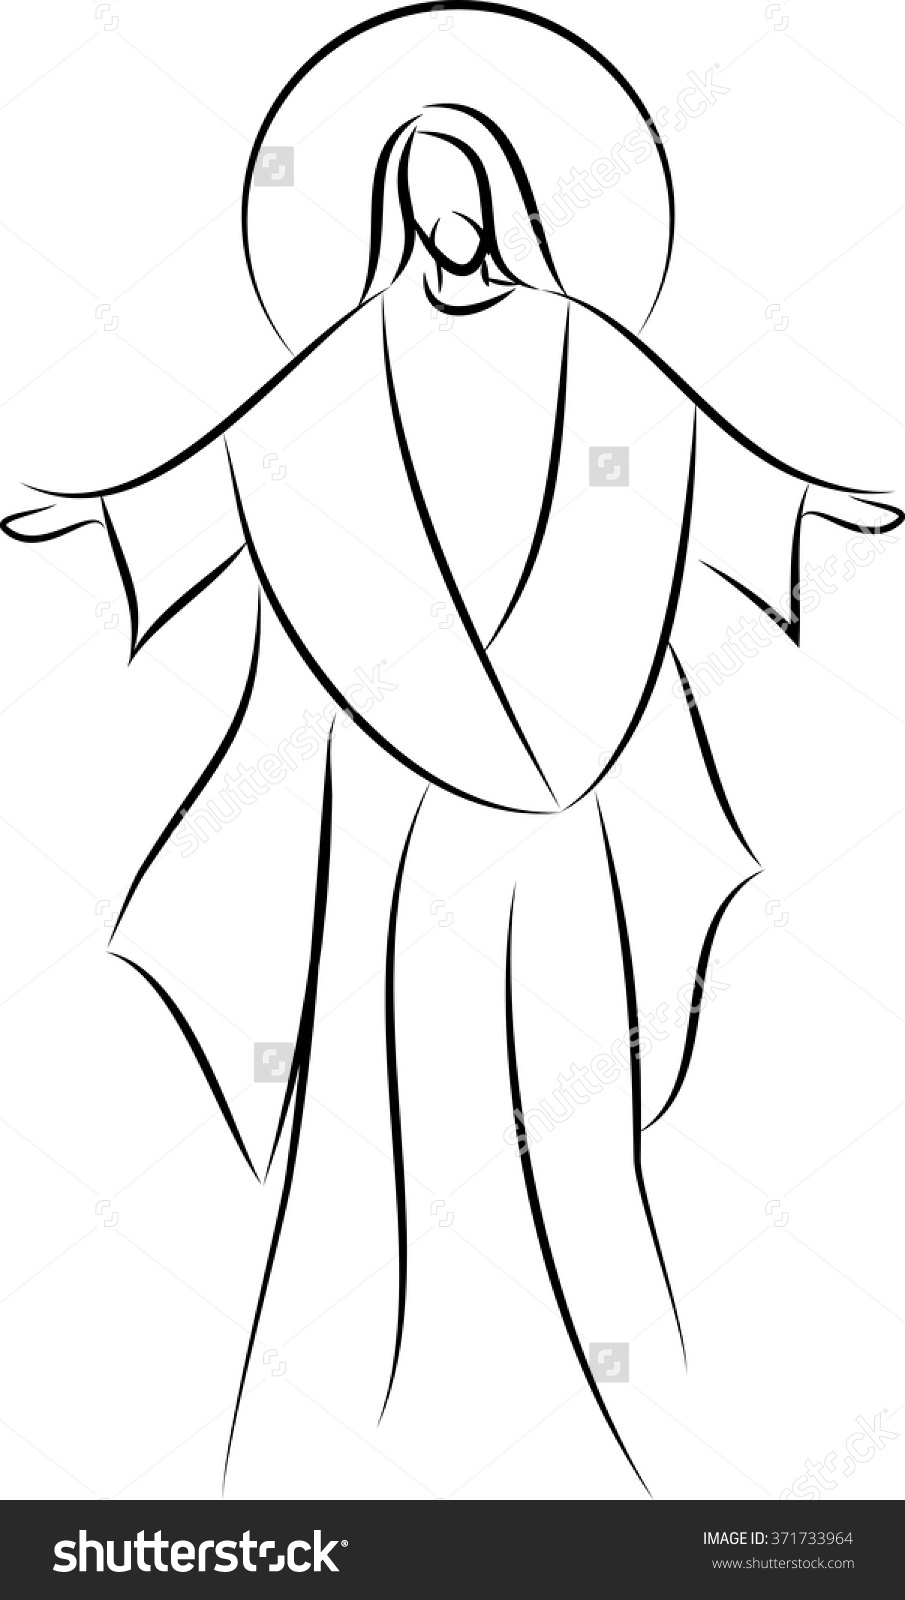 Simple drawing of jesus. Christian clipart easy